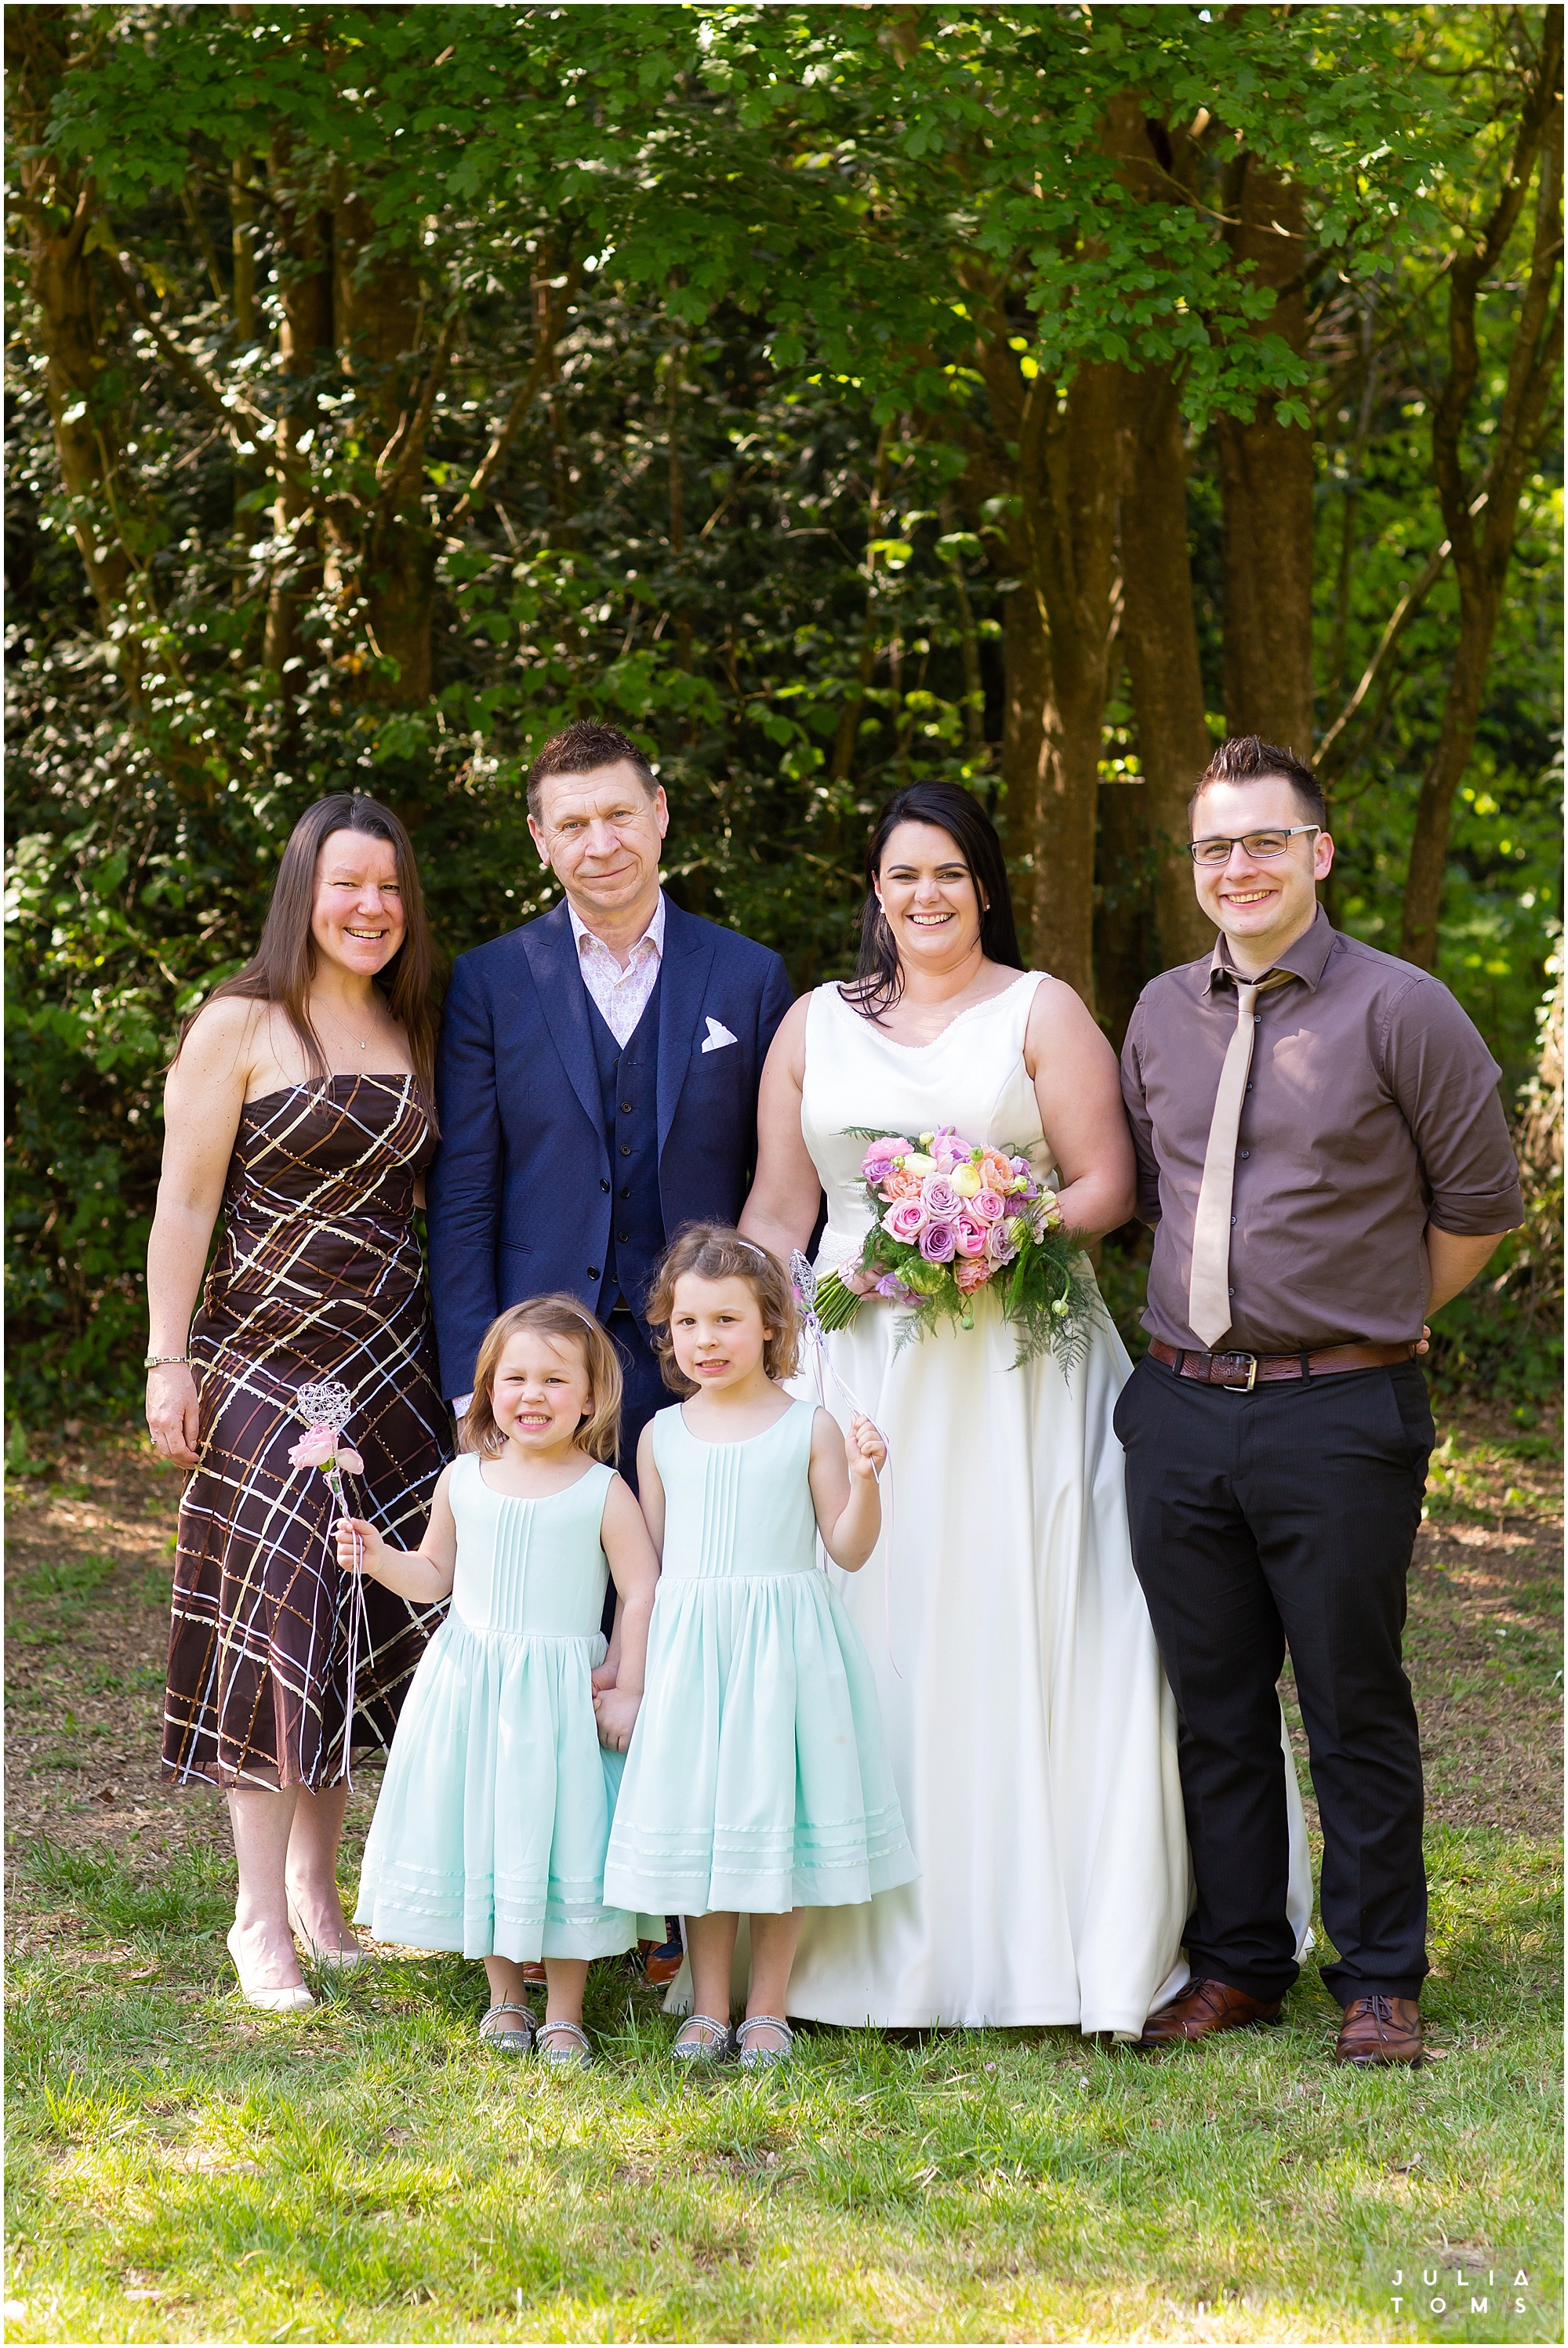 hampshire_wedding_photographer_juliatoms_041.jpg